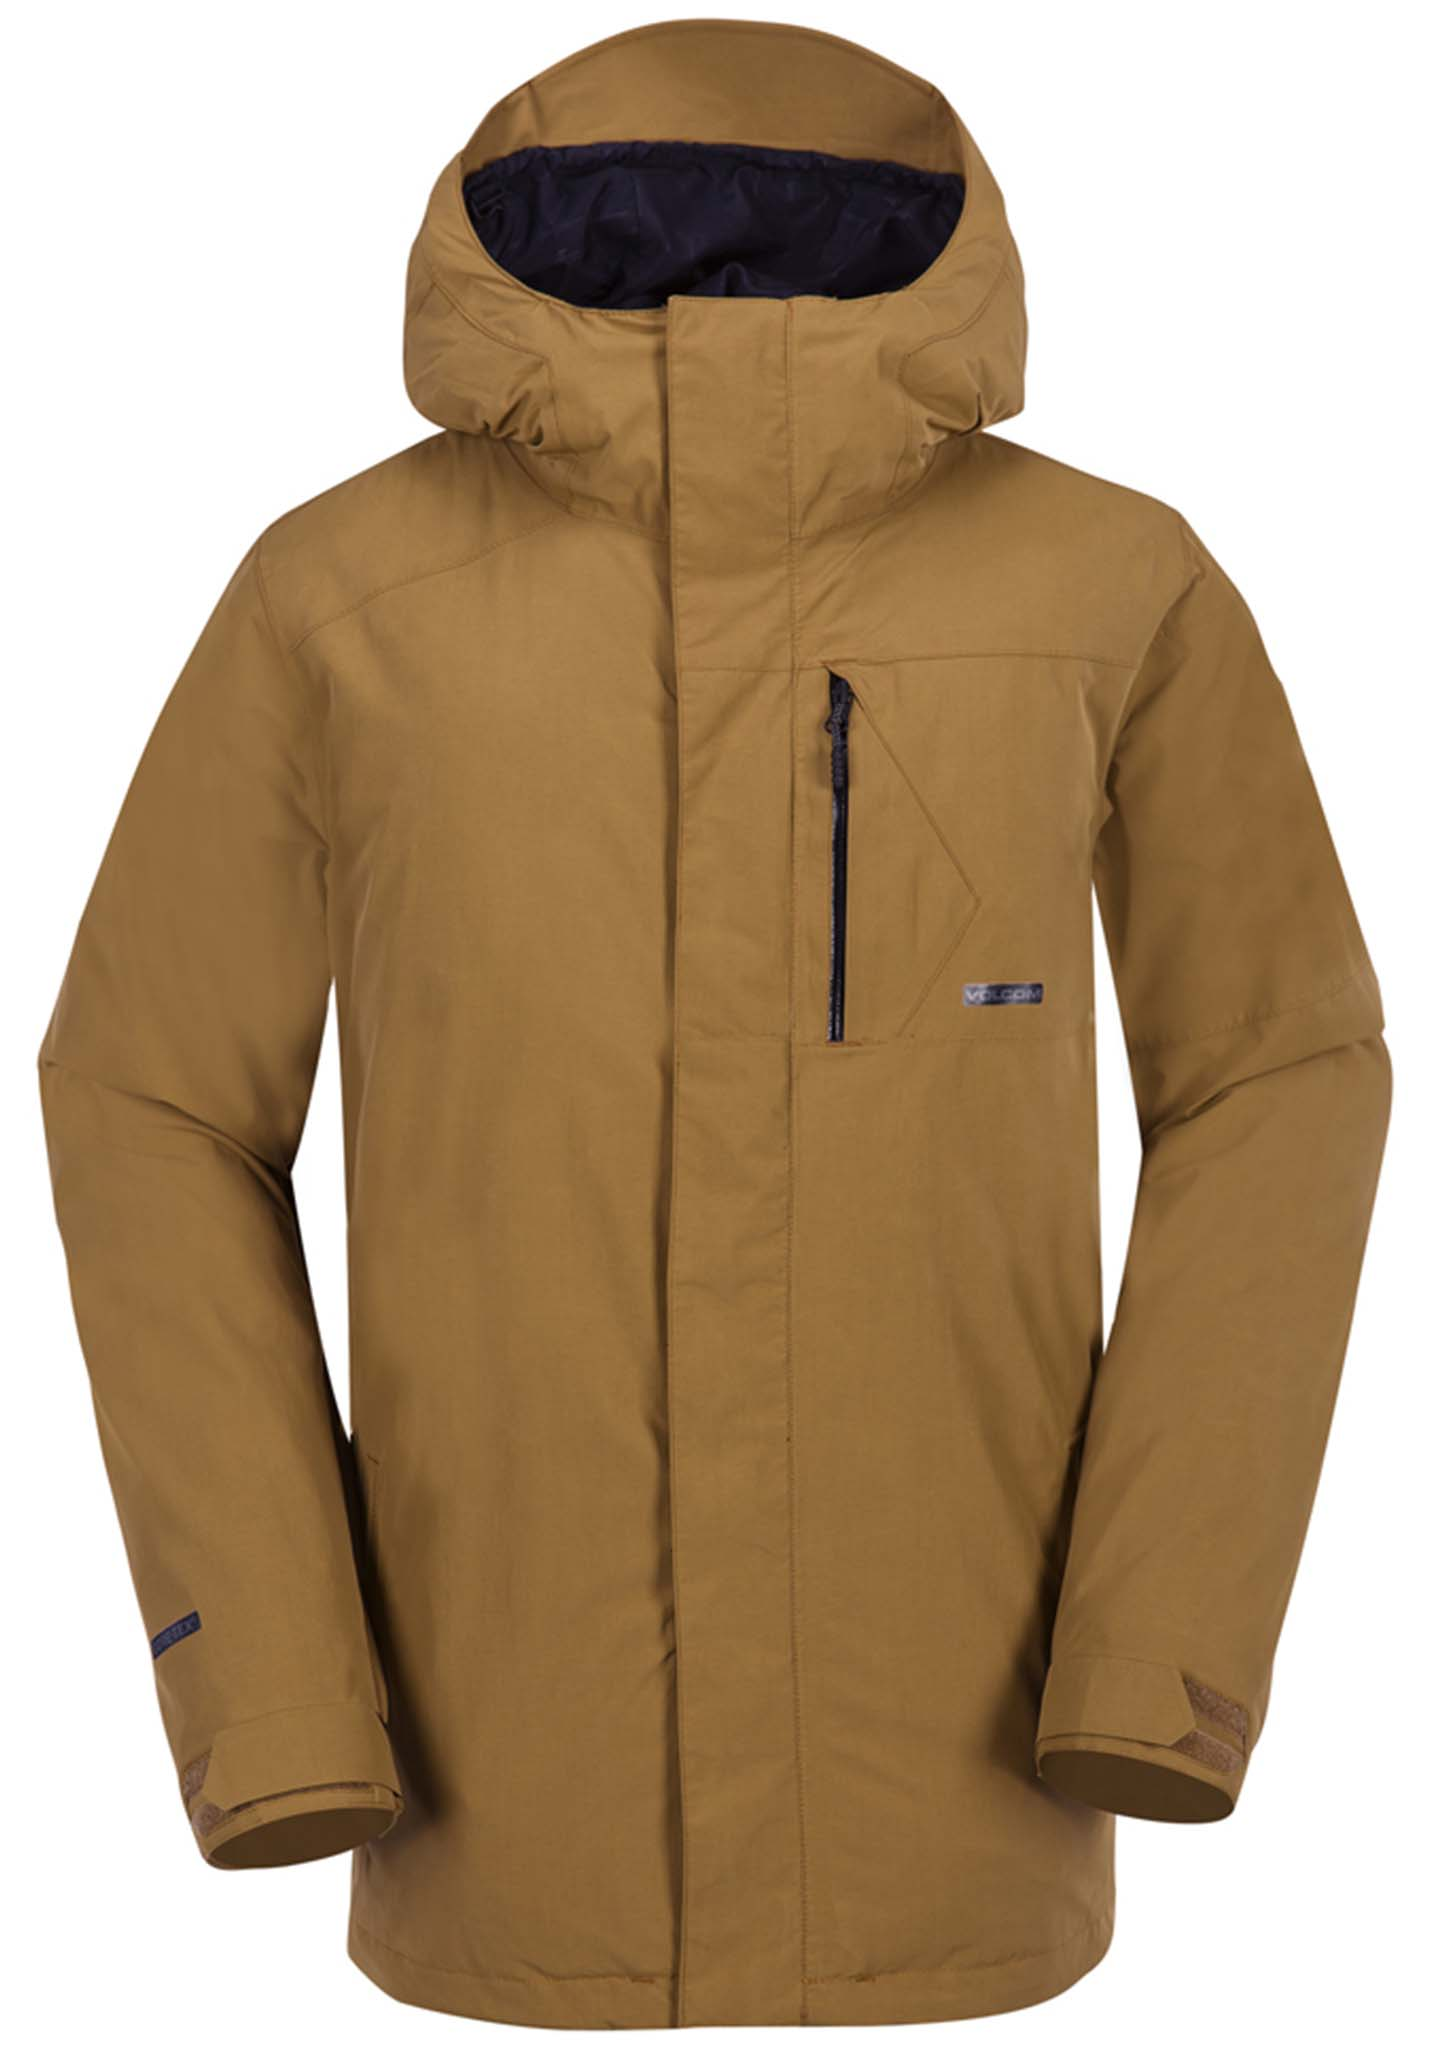 online store 28ef1 63ef8 Volcom L Gore-Tex - Snowboard Jacket for Men - Beige